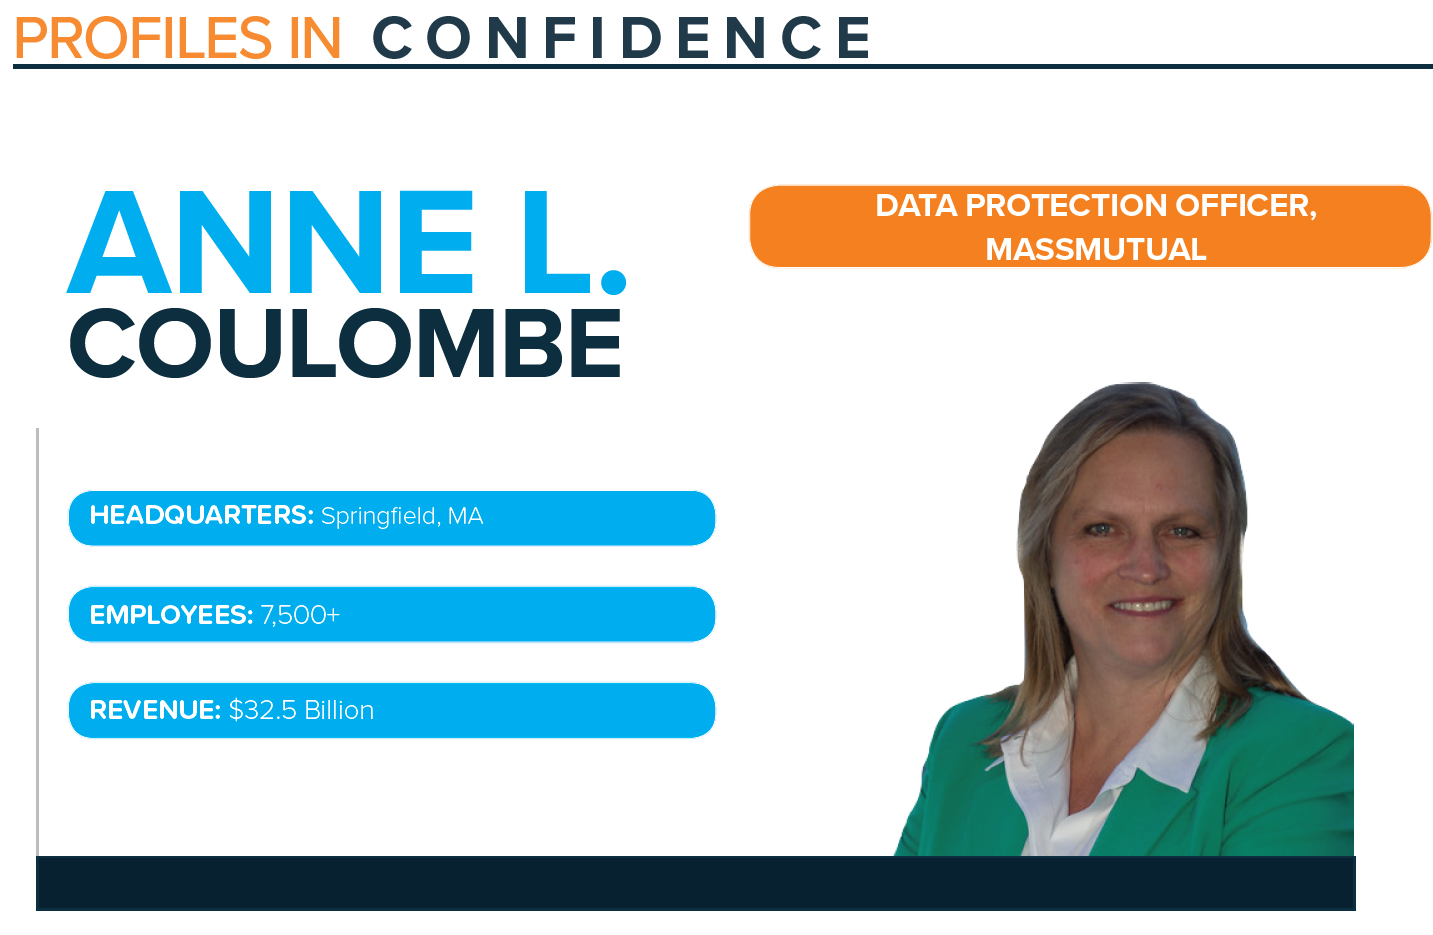 Anne Coulombe MassMutual Profile